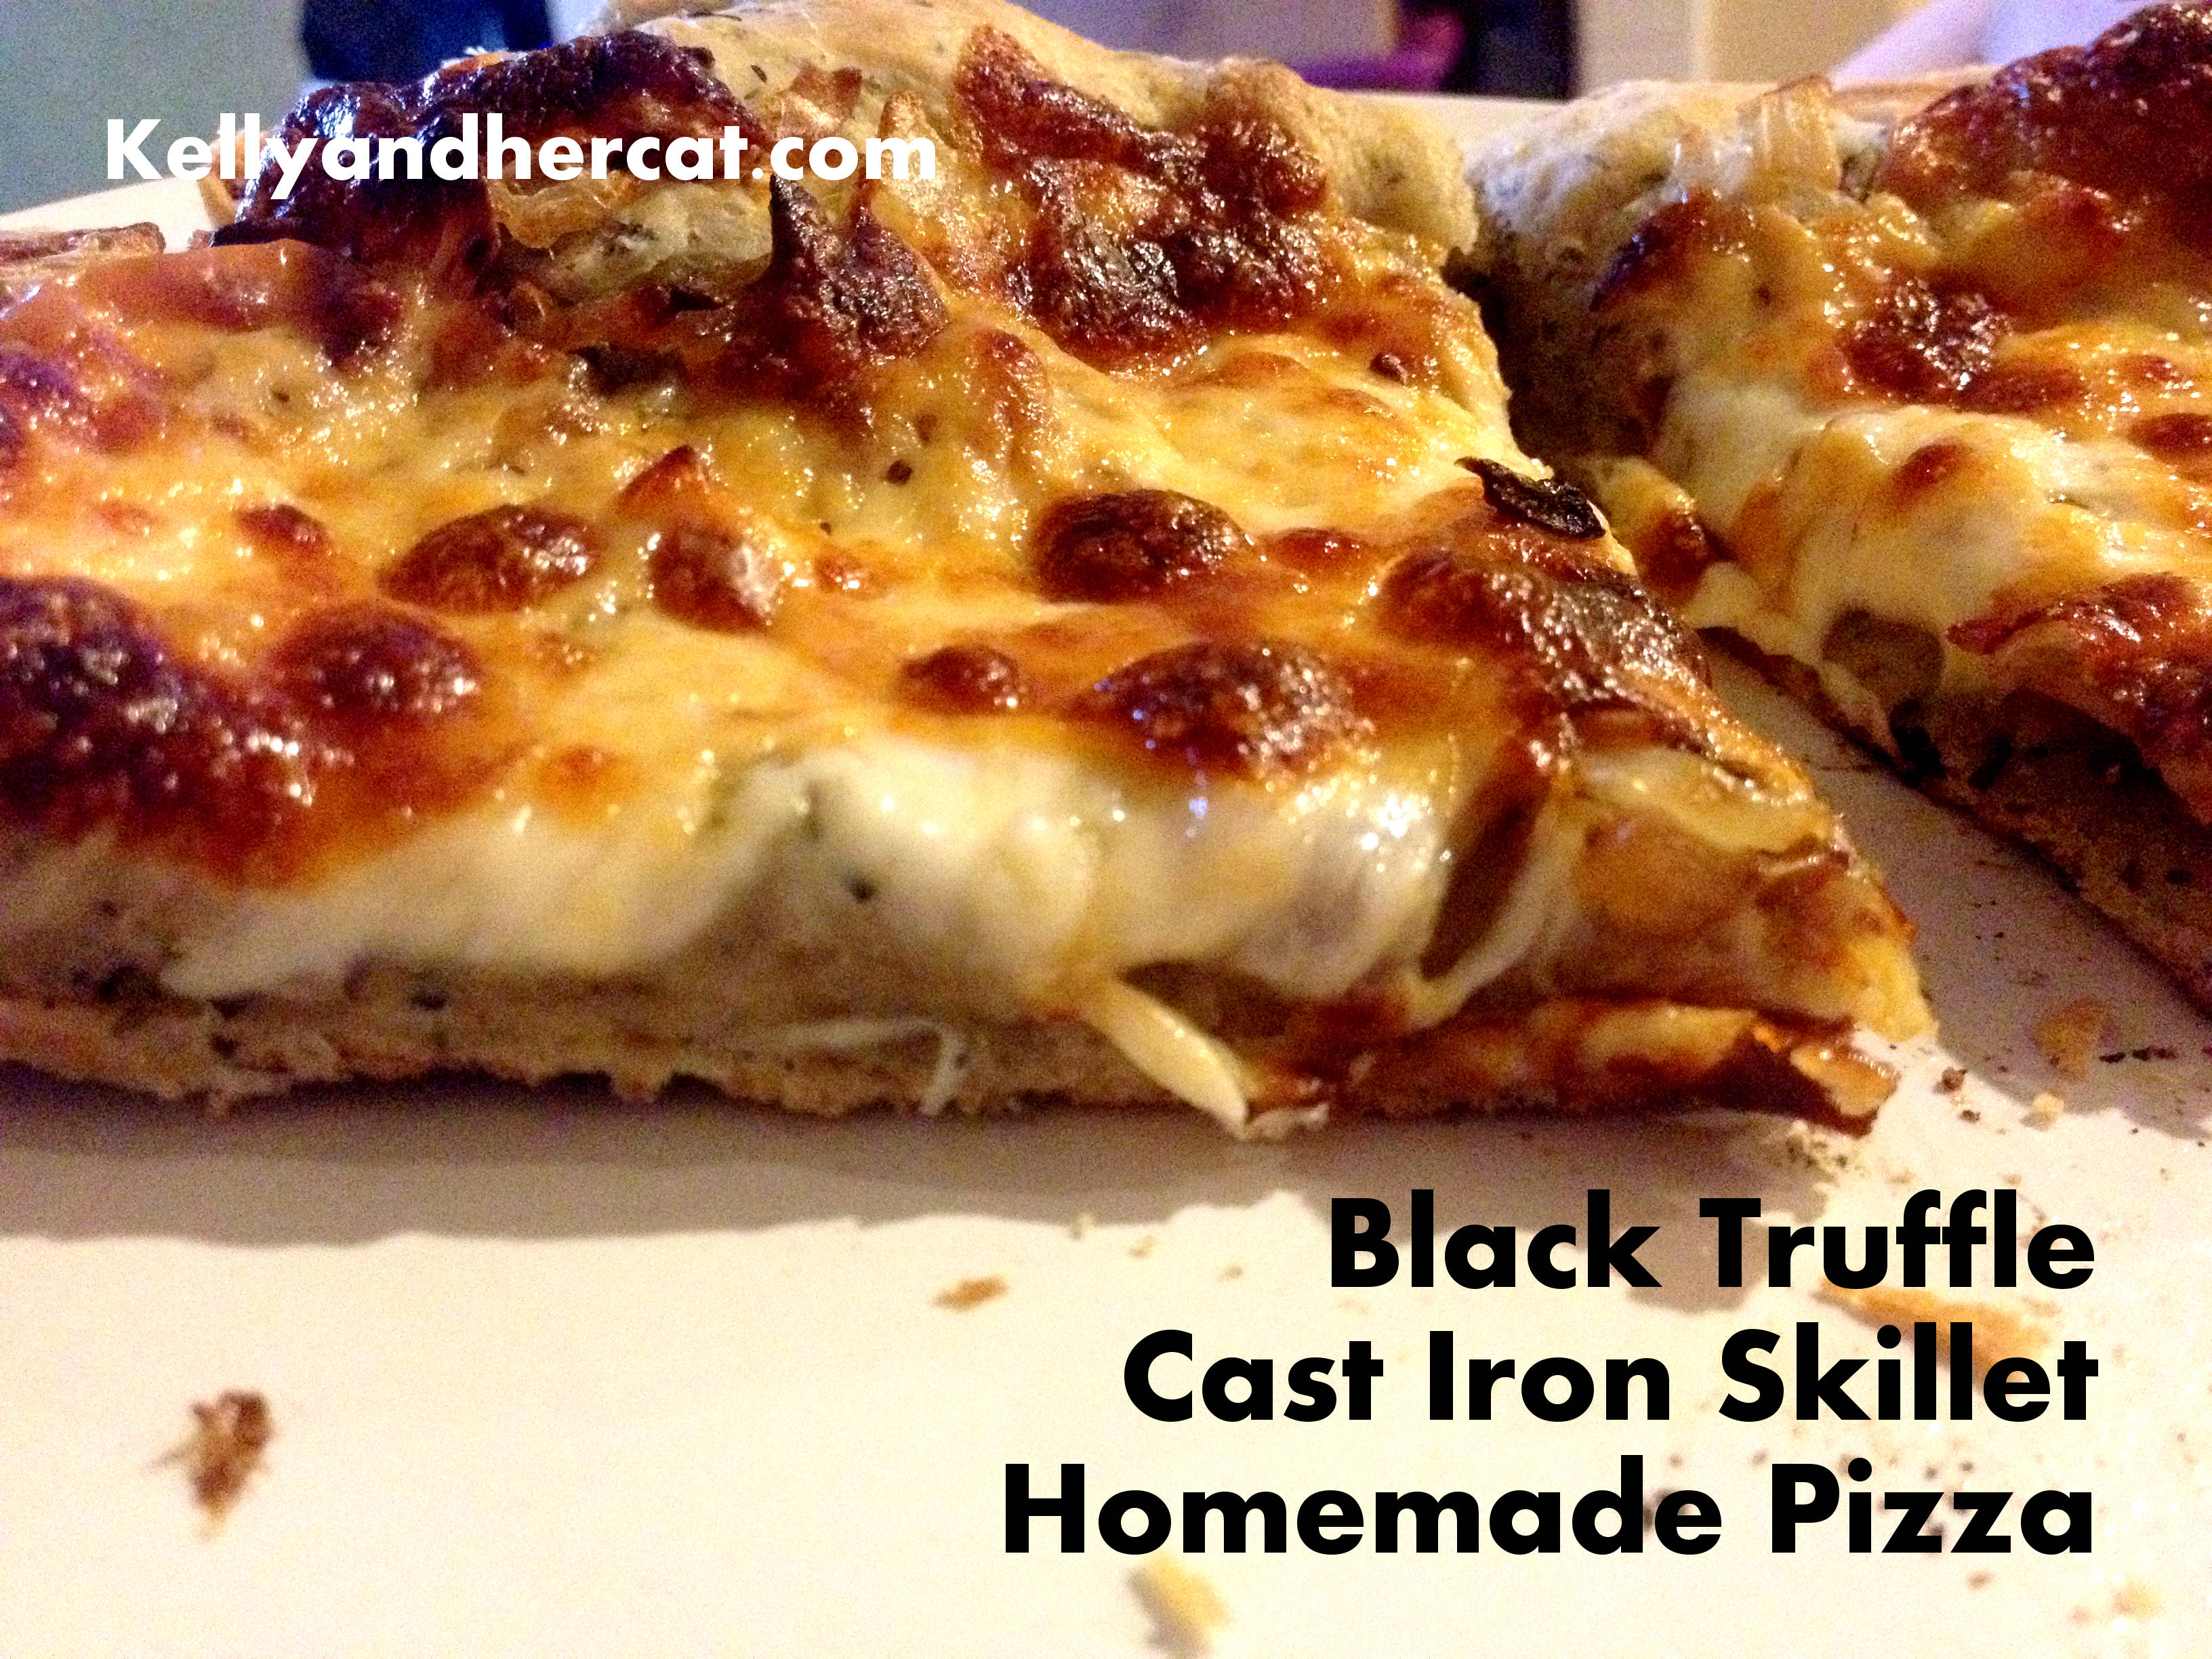 Black Truffle Garlic Pizza